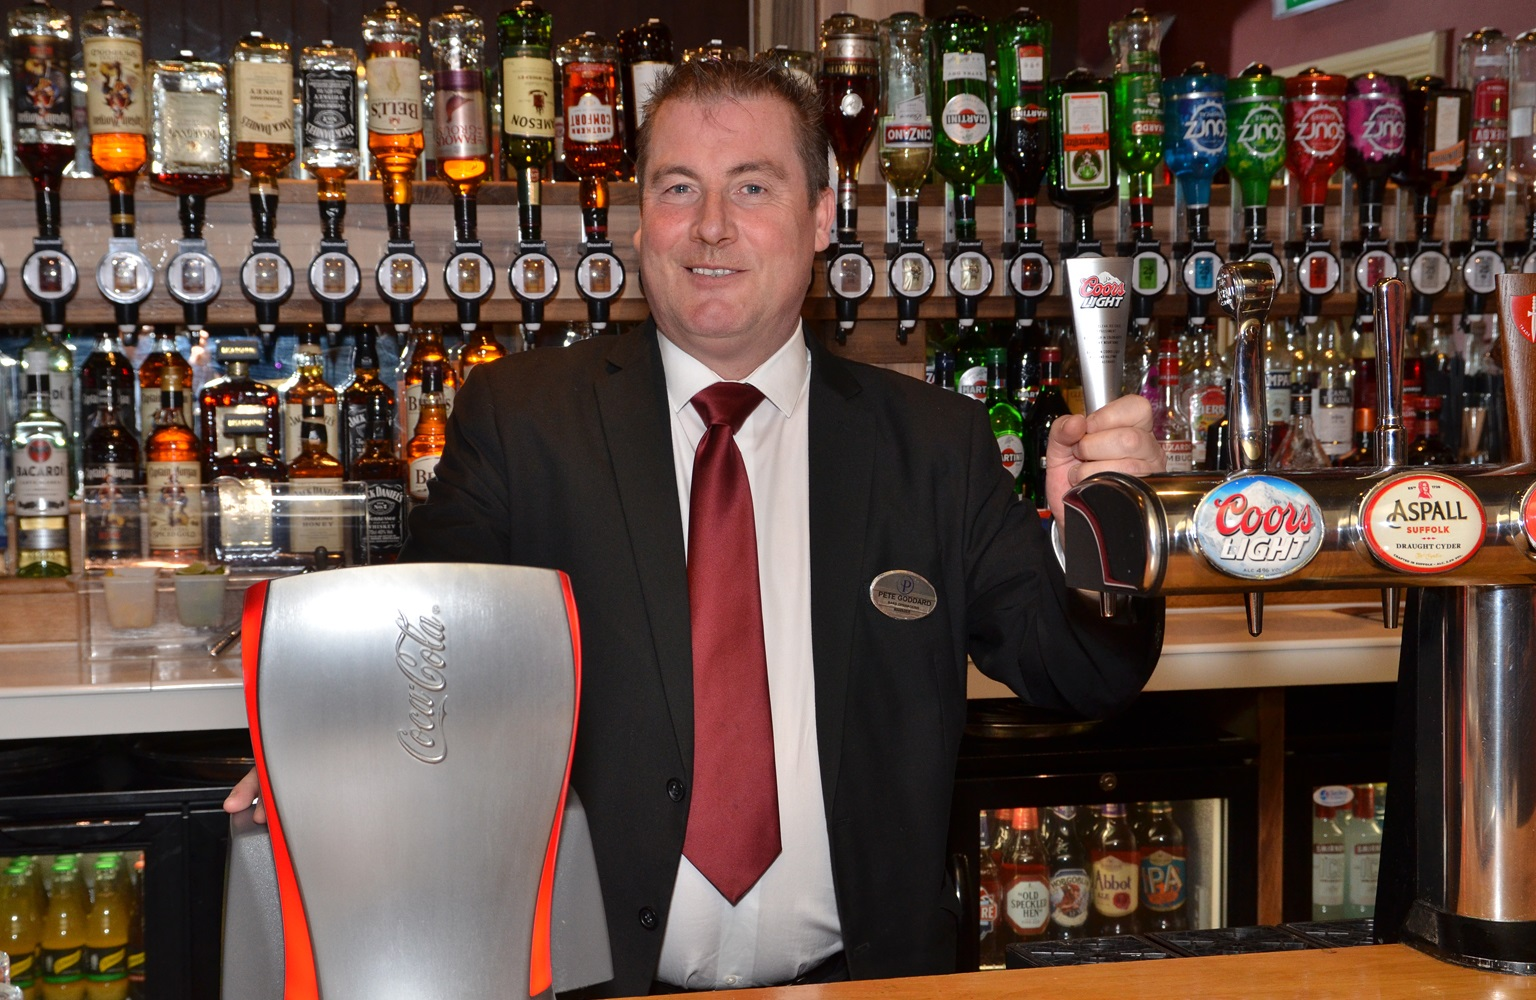 Bars Team Recognition Day - Meet Pete Goddard